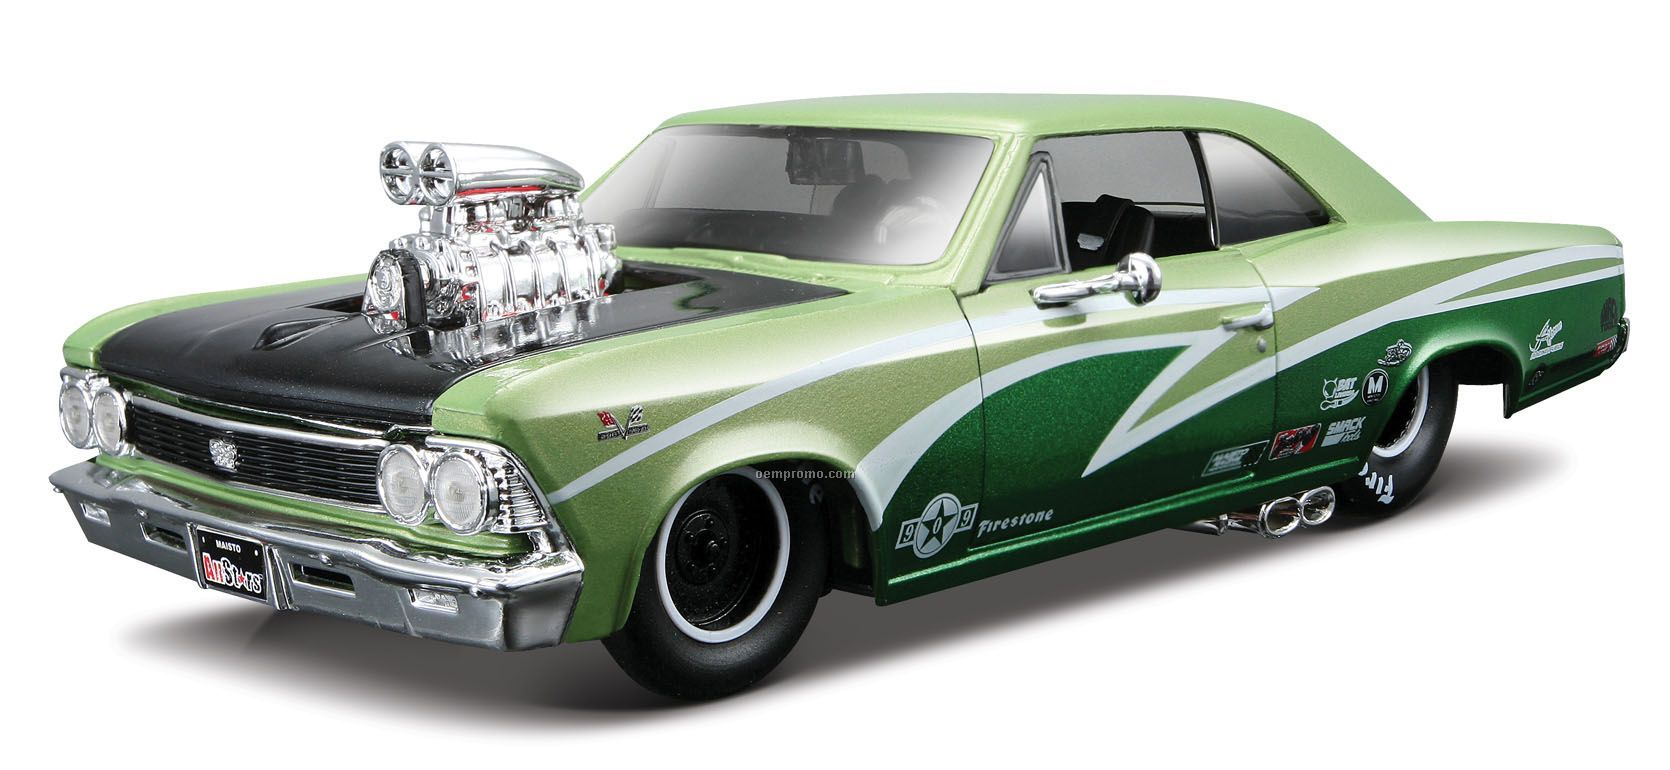 7x2 1 2x3 1966 Chevrolet Chevelle Ss 396 Die Cast Carchina Chevy